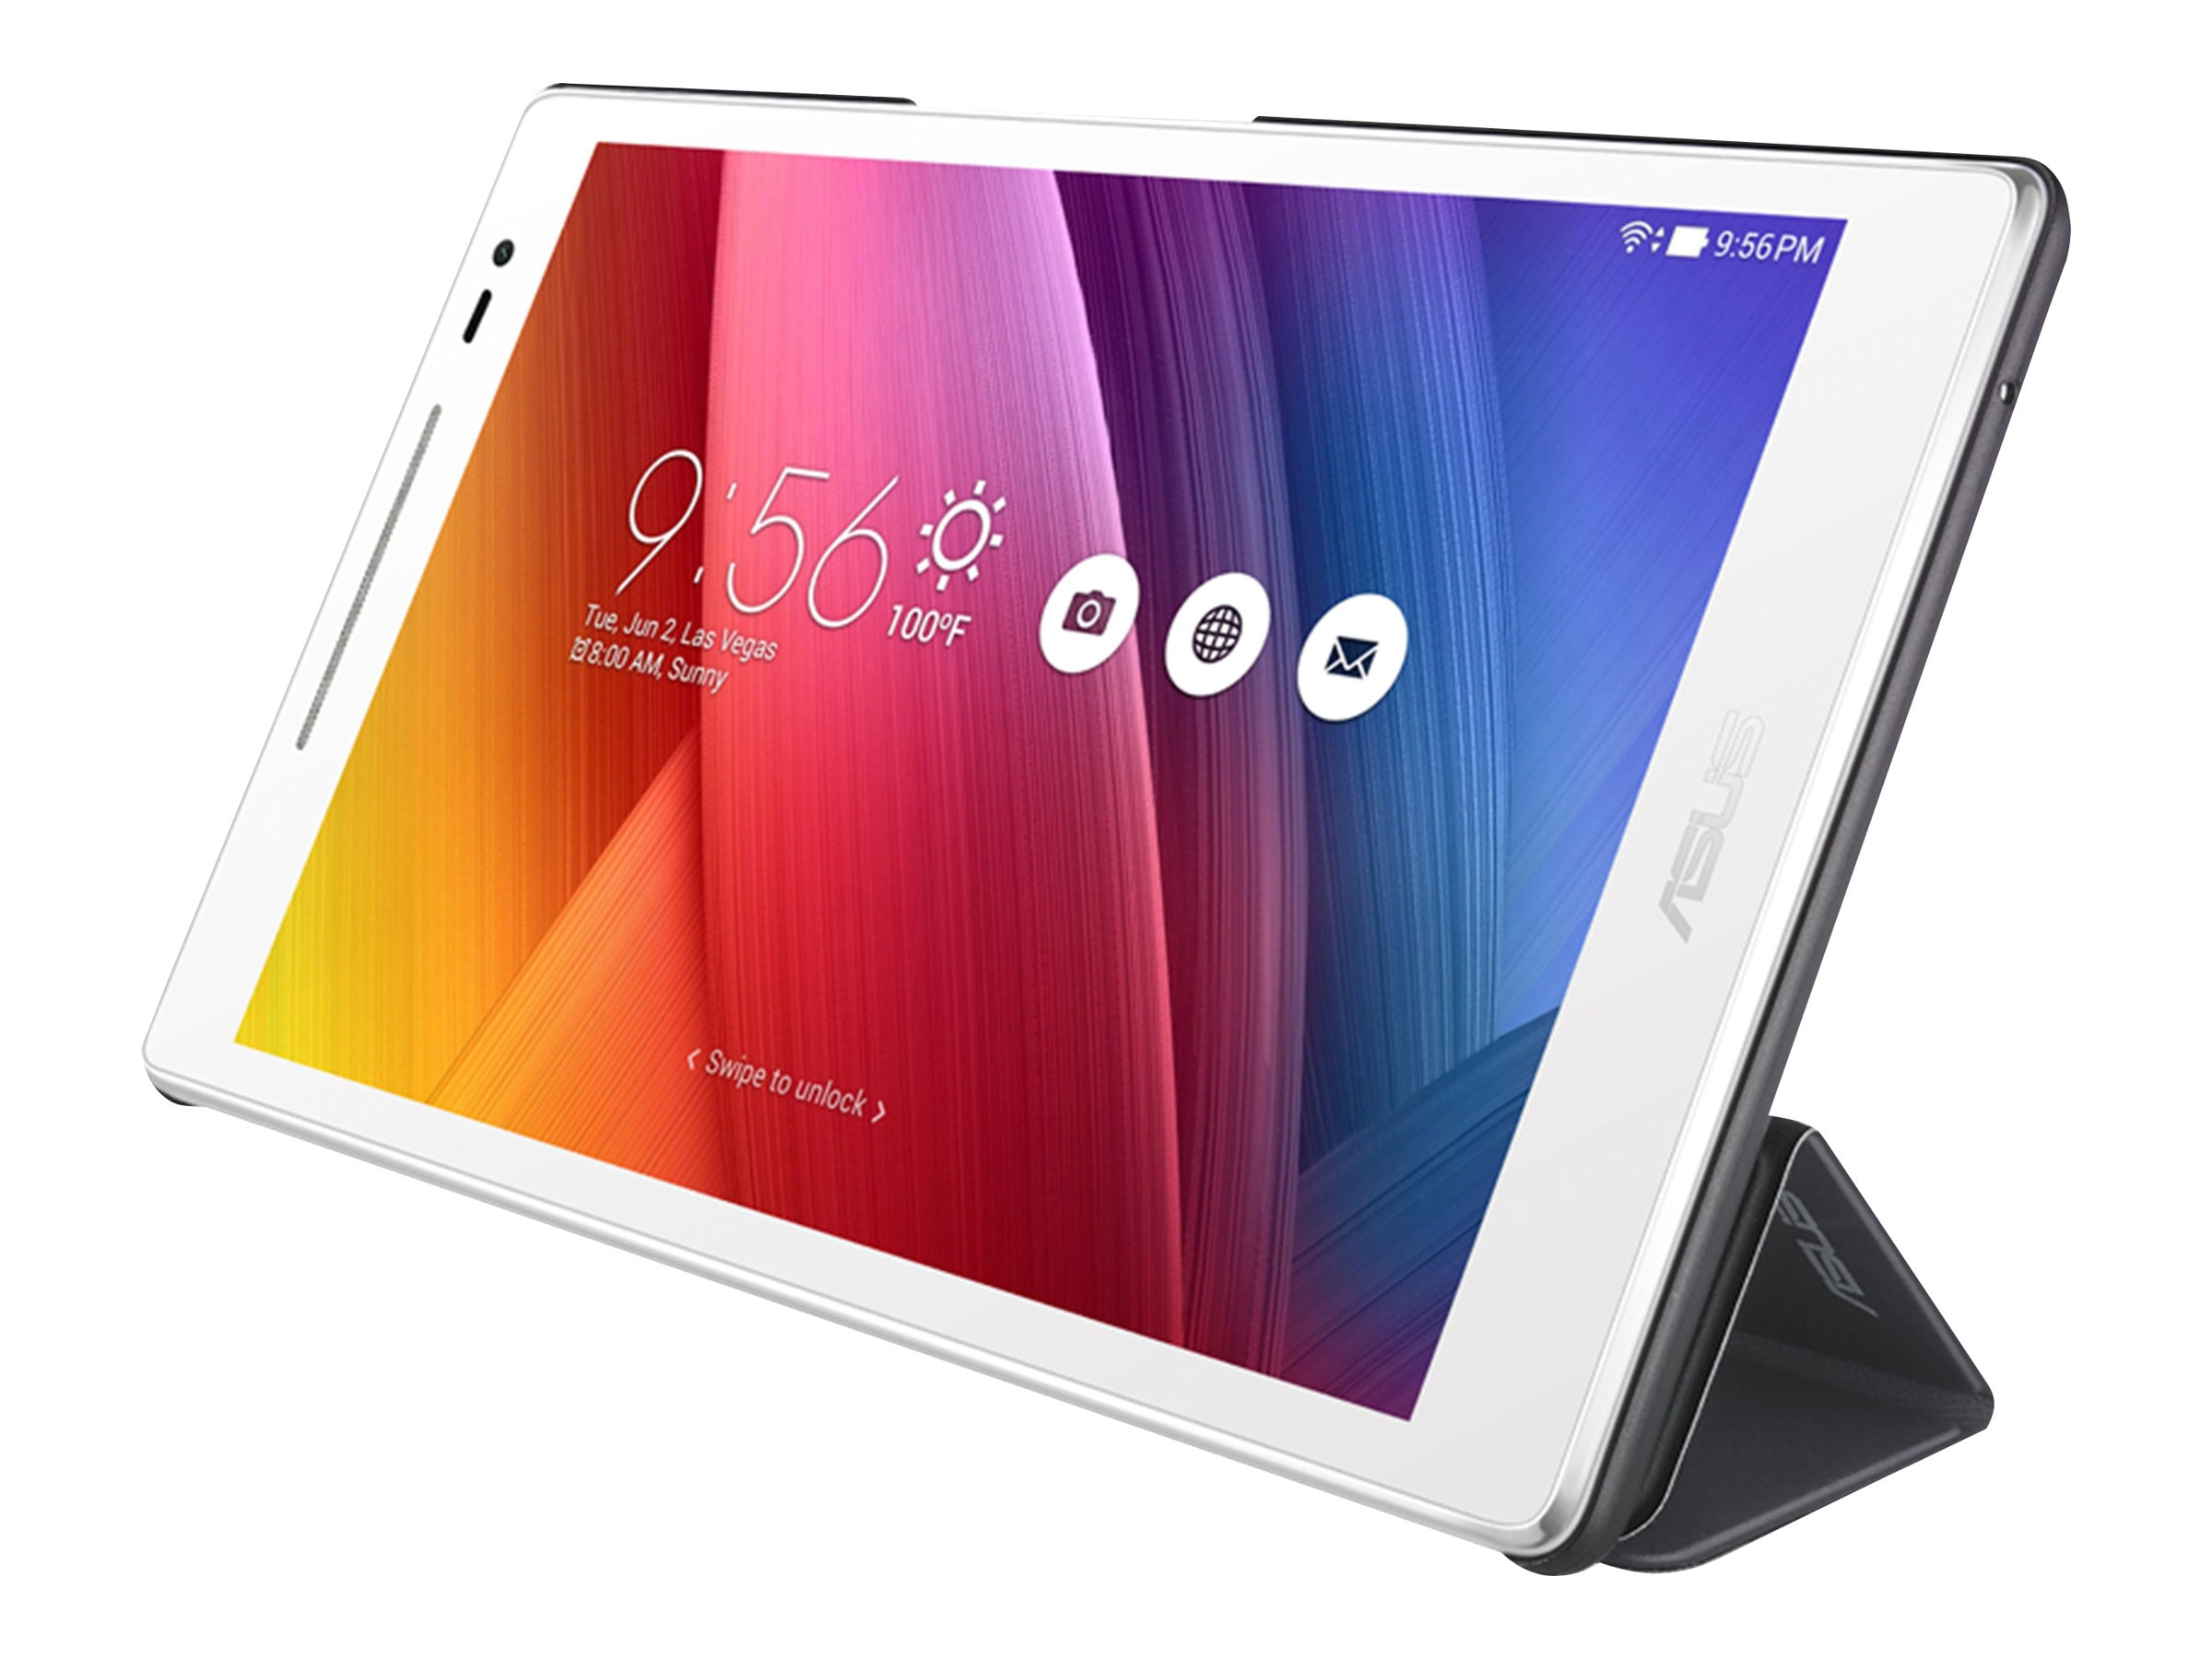 Asus Tricover for Zenpad 8.0, Black, 90XB015P-BSL310